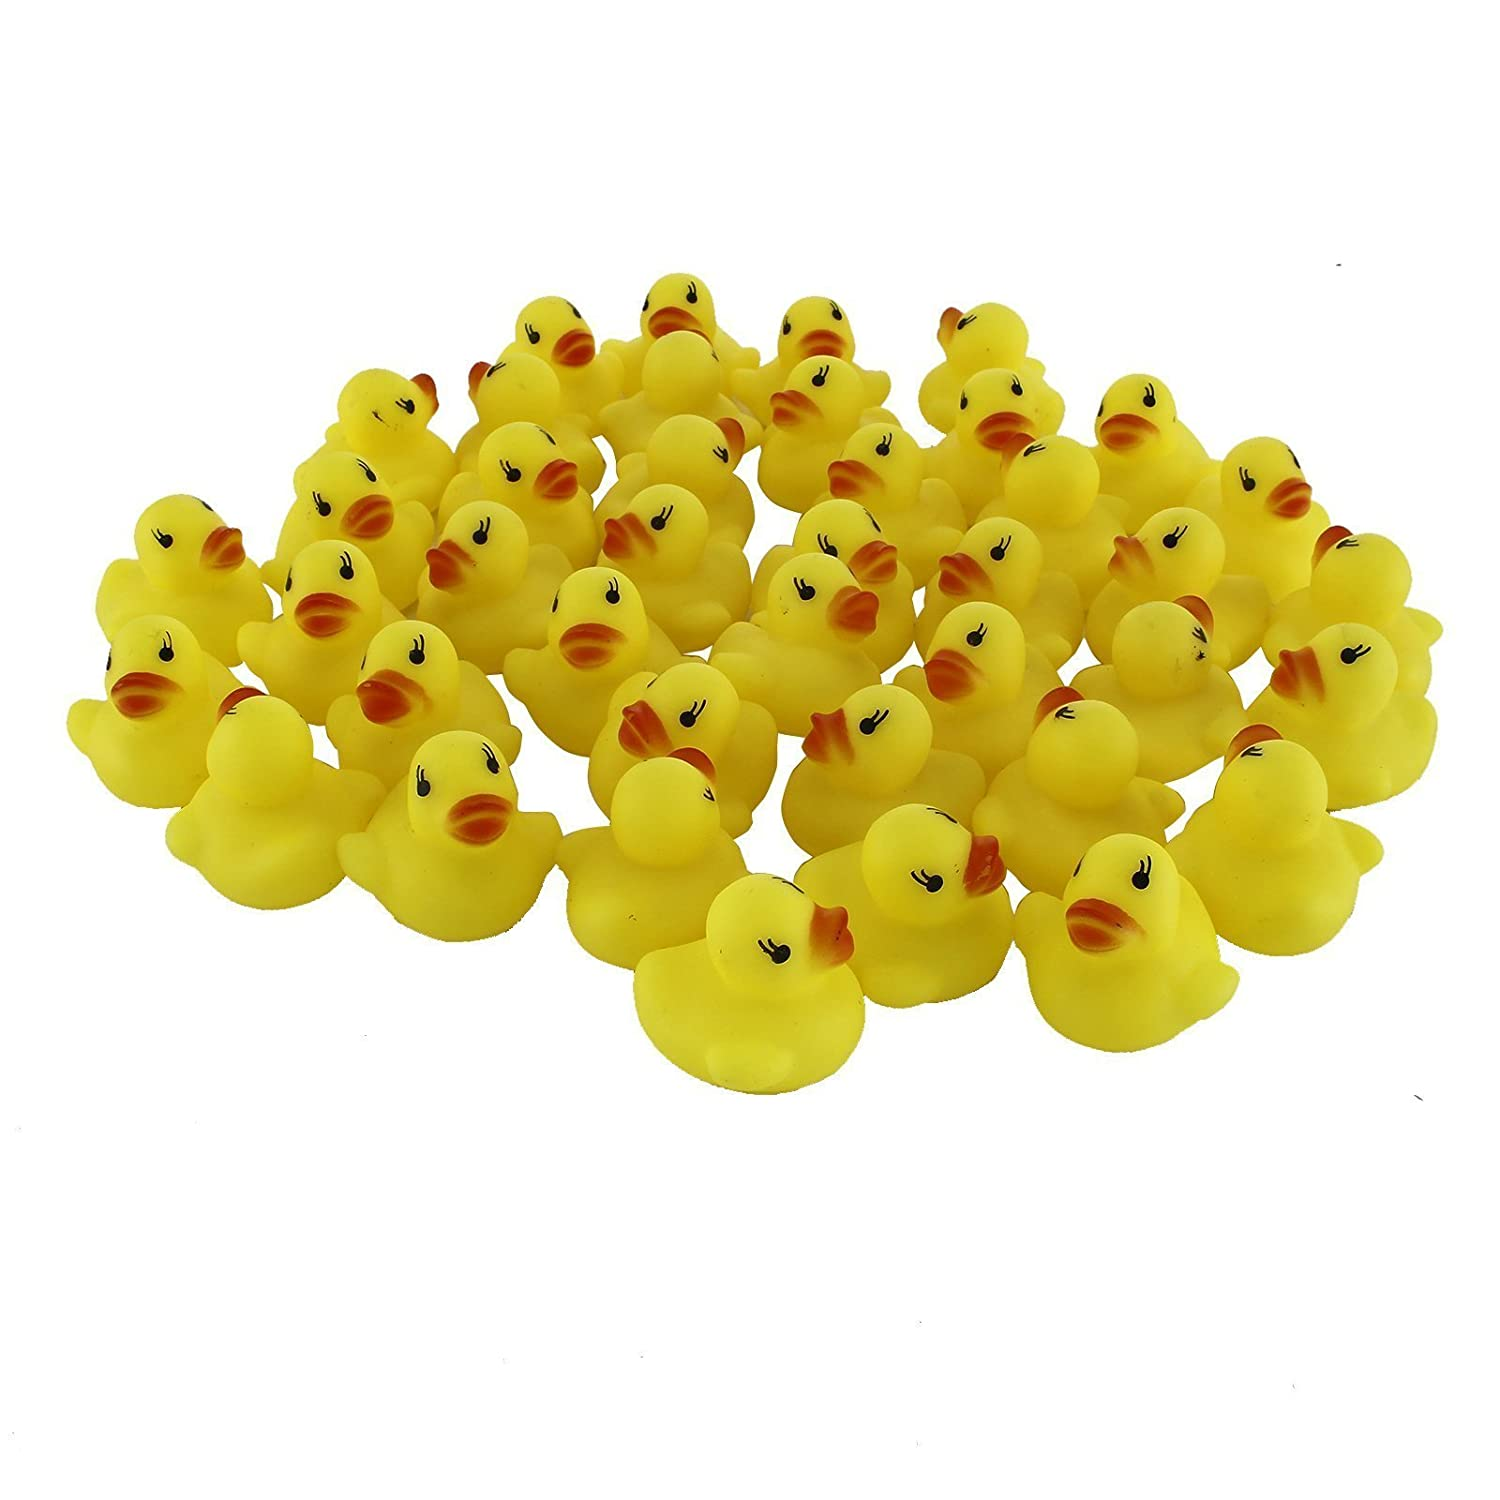 Stuffwholesale 1.5inch Rubber Sound Duck Baby Bath Toys 20rd